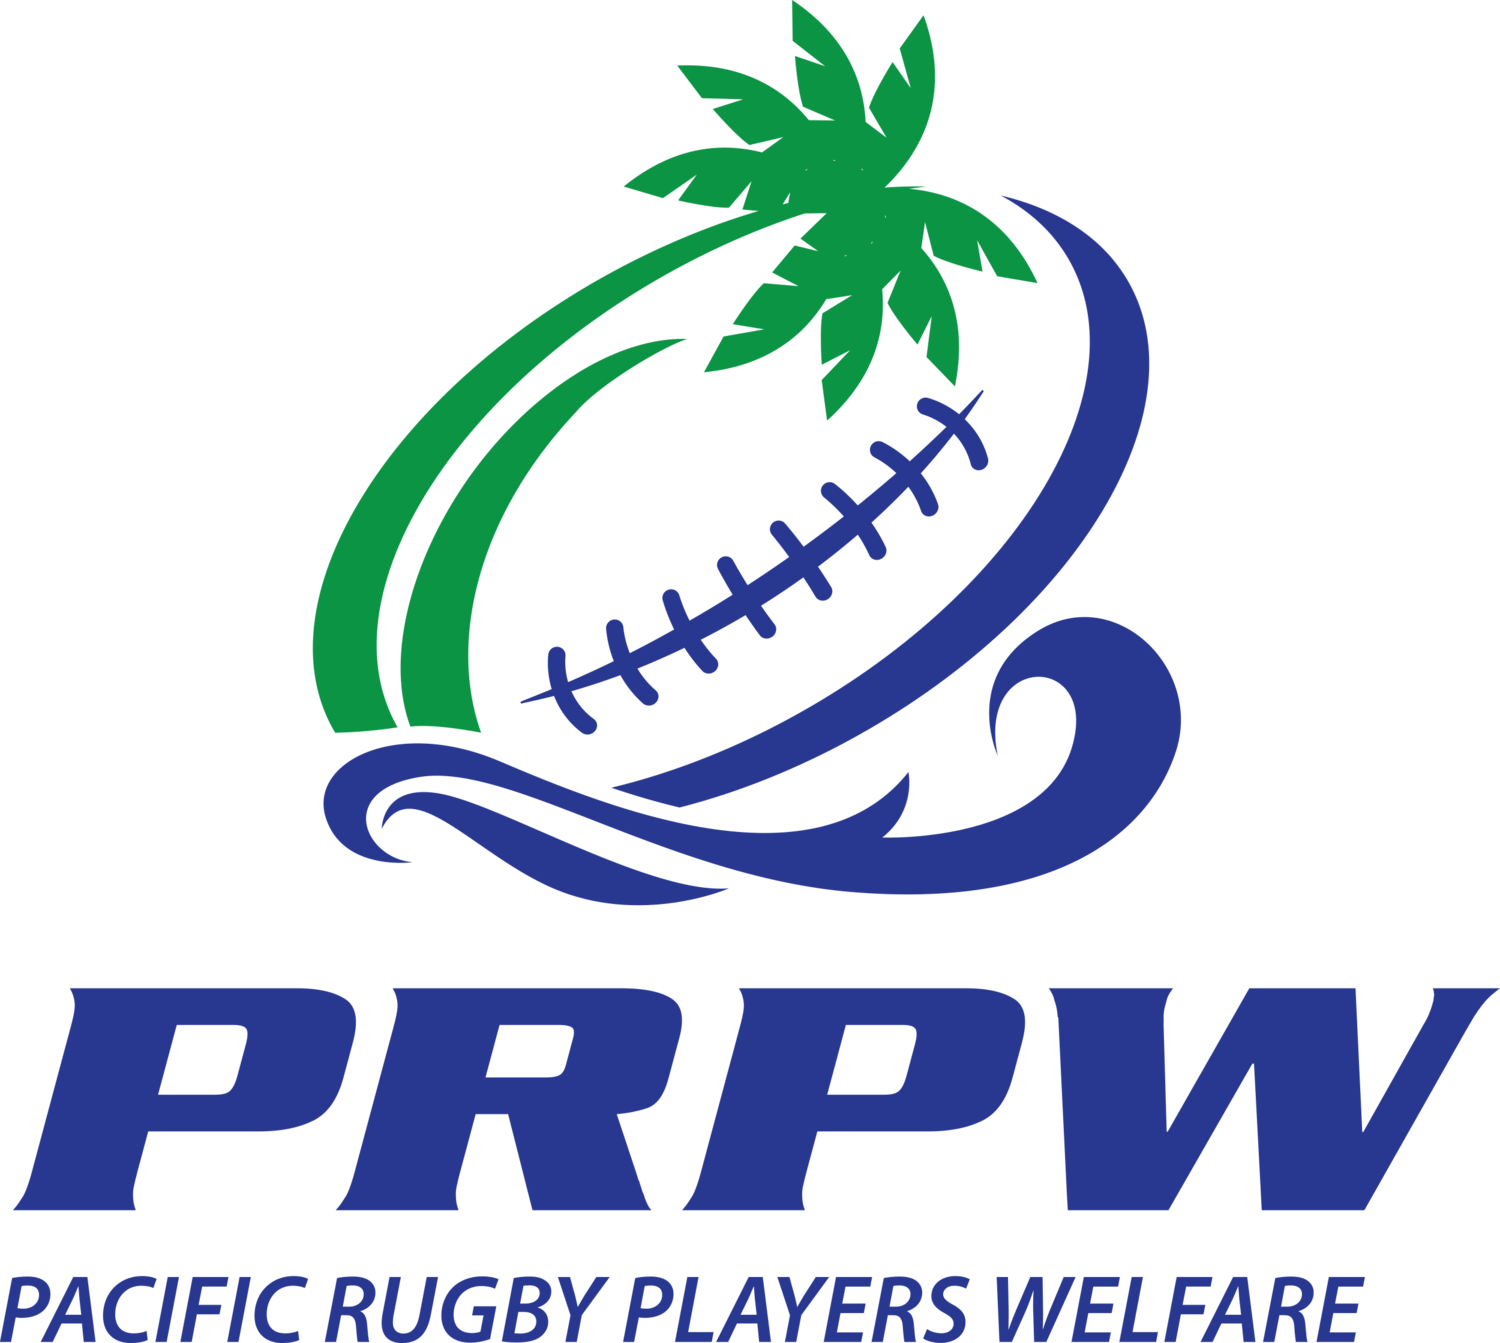 Pacific Rugby Players Welfare